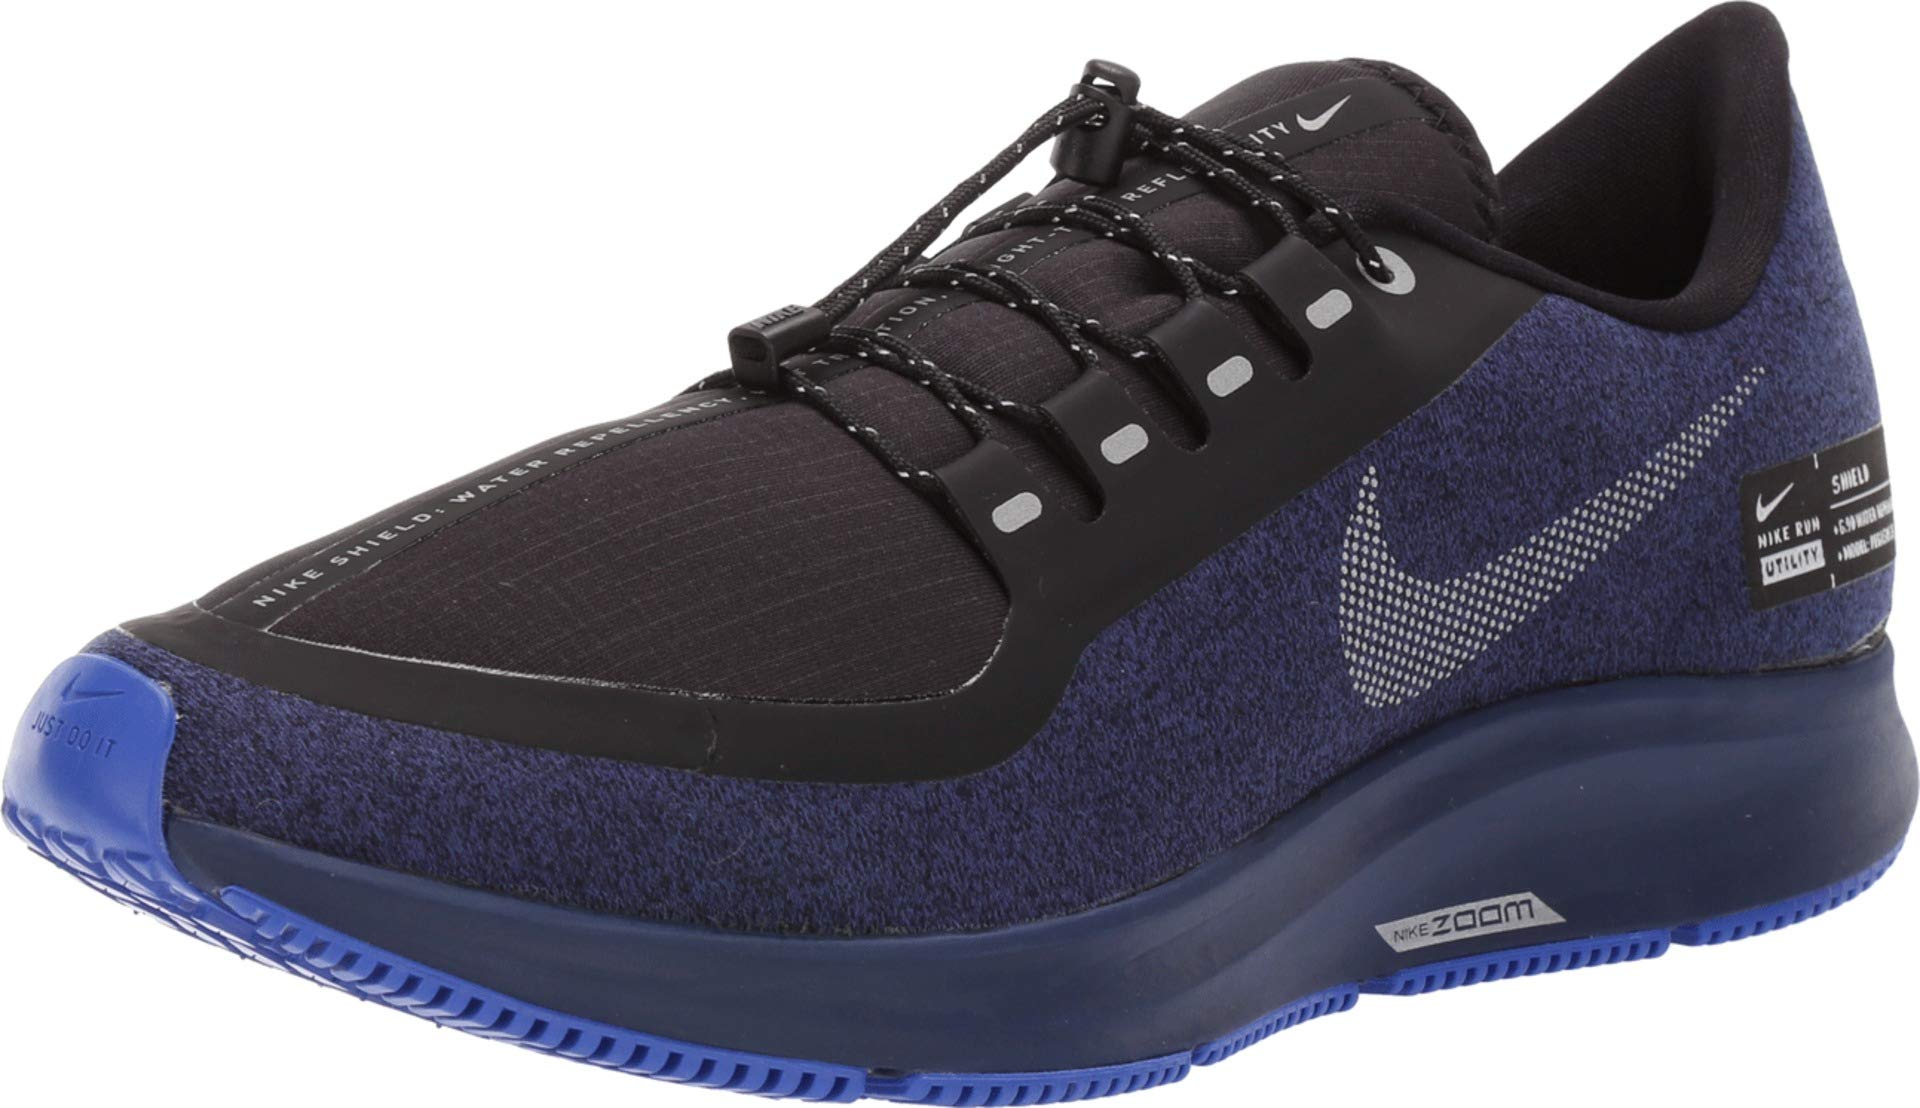 new product ed730 b5d78 Nike Air Zoom Pegasus 35 Shield Men's Running Shoe Black/Metallic  Silver-Blue Void 10.0